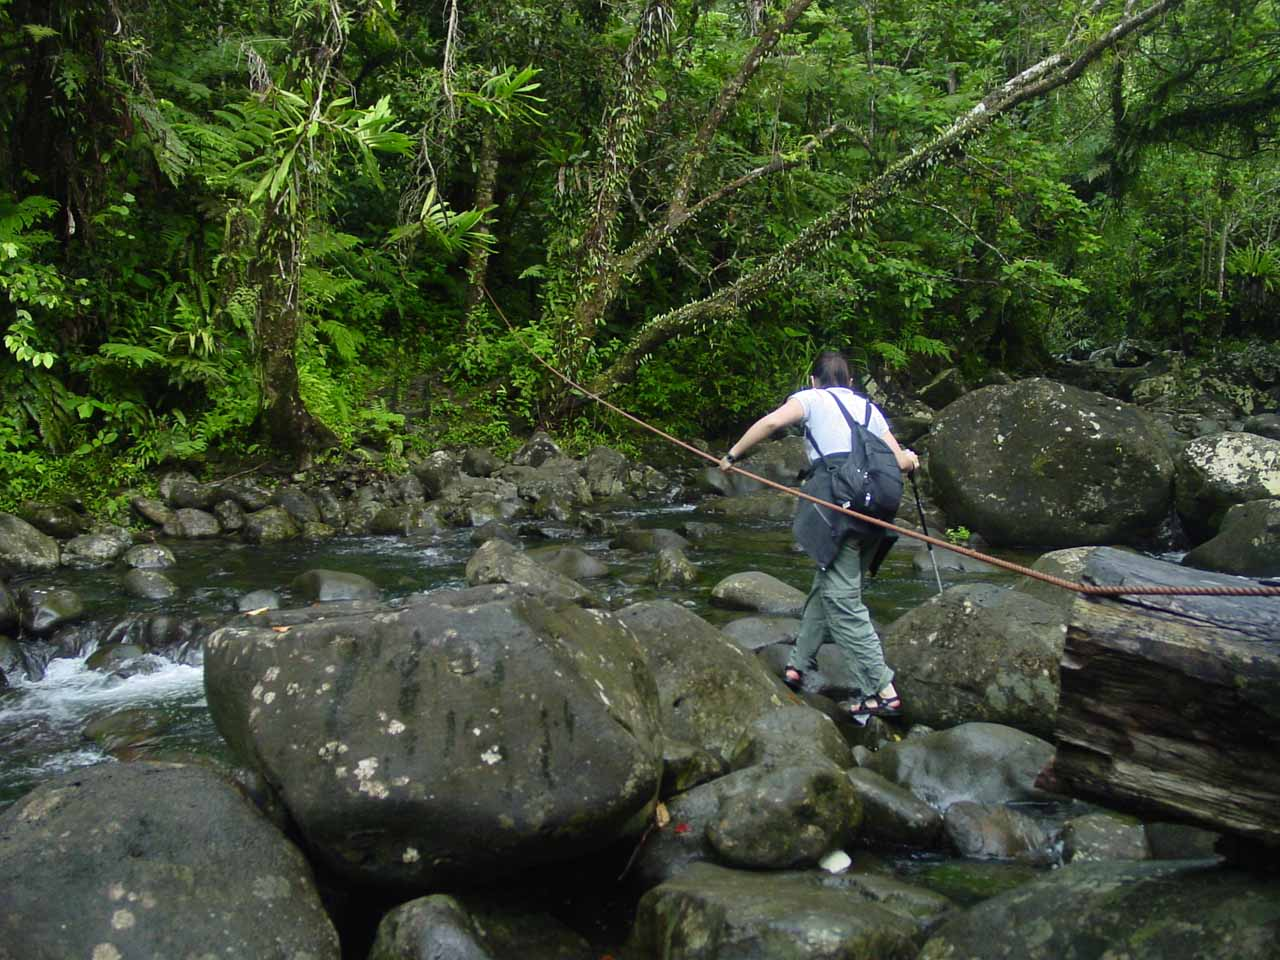 Julie traverses one of the rope-assisted stream crossings